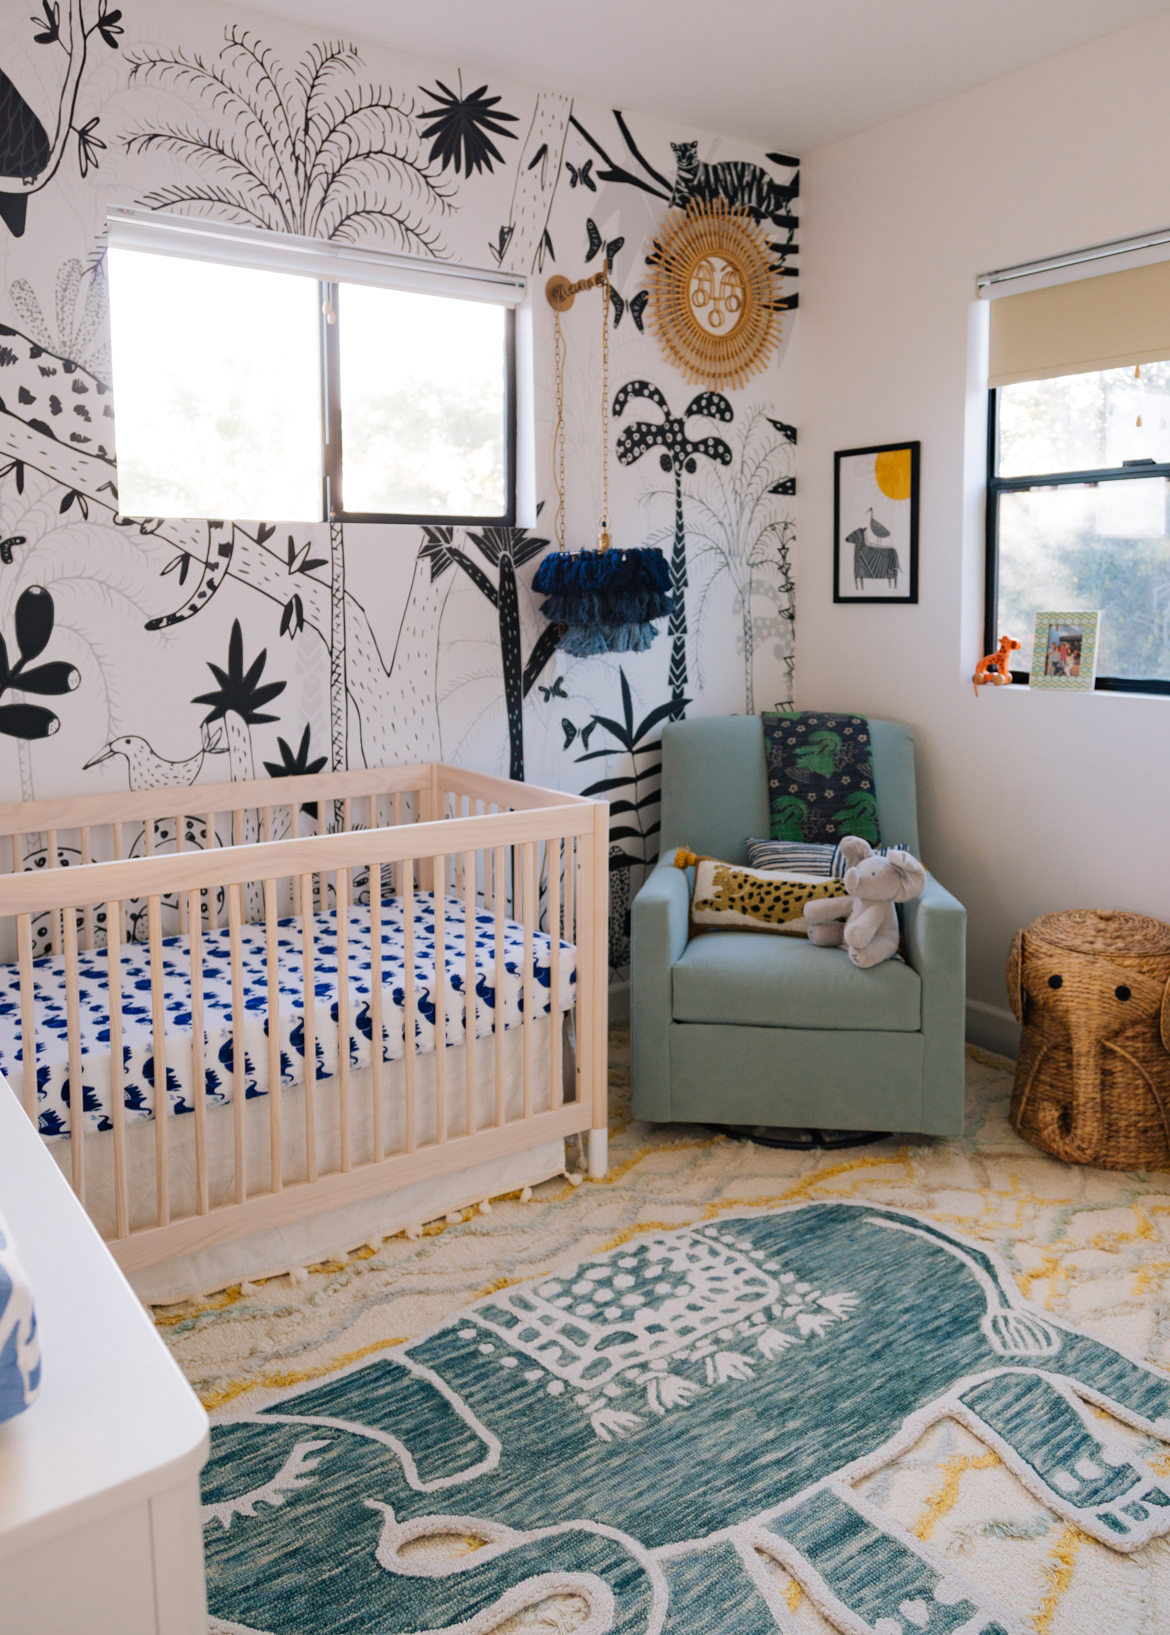 A Modern Boho Jungle Nursery For Baby Chase | Justina Blakeney